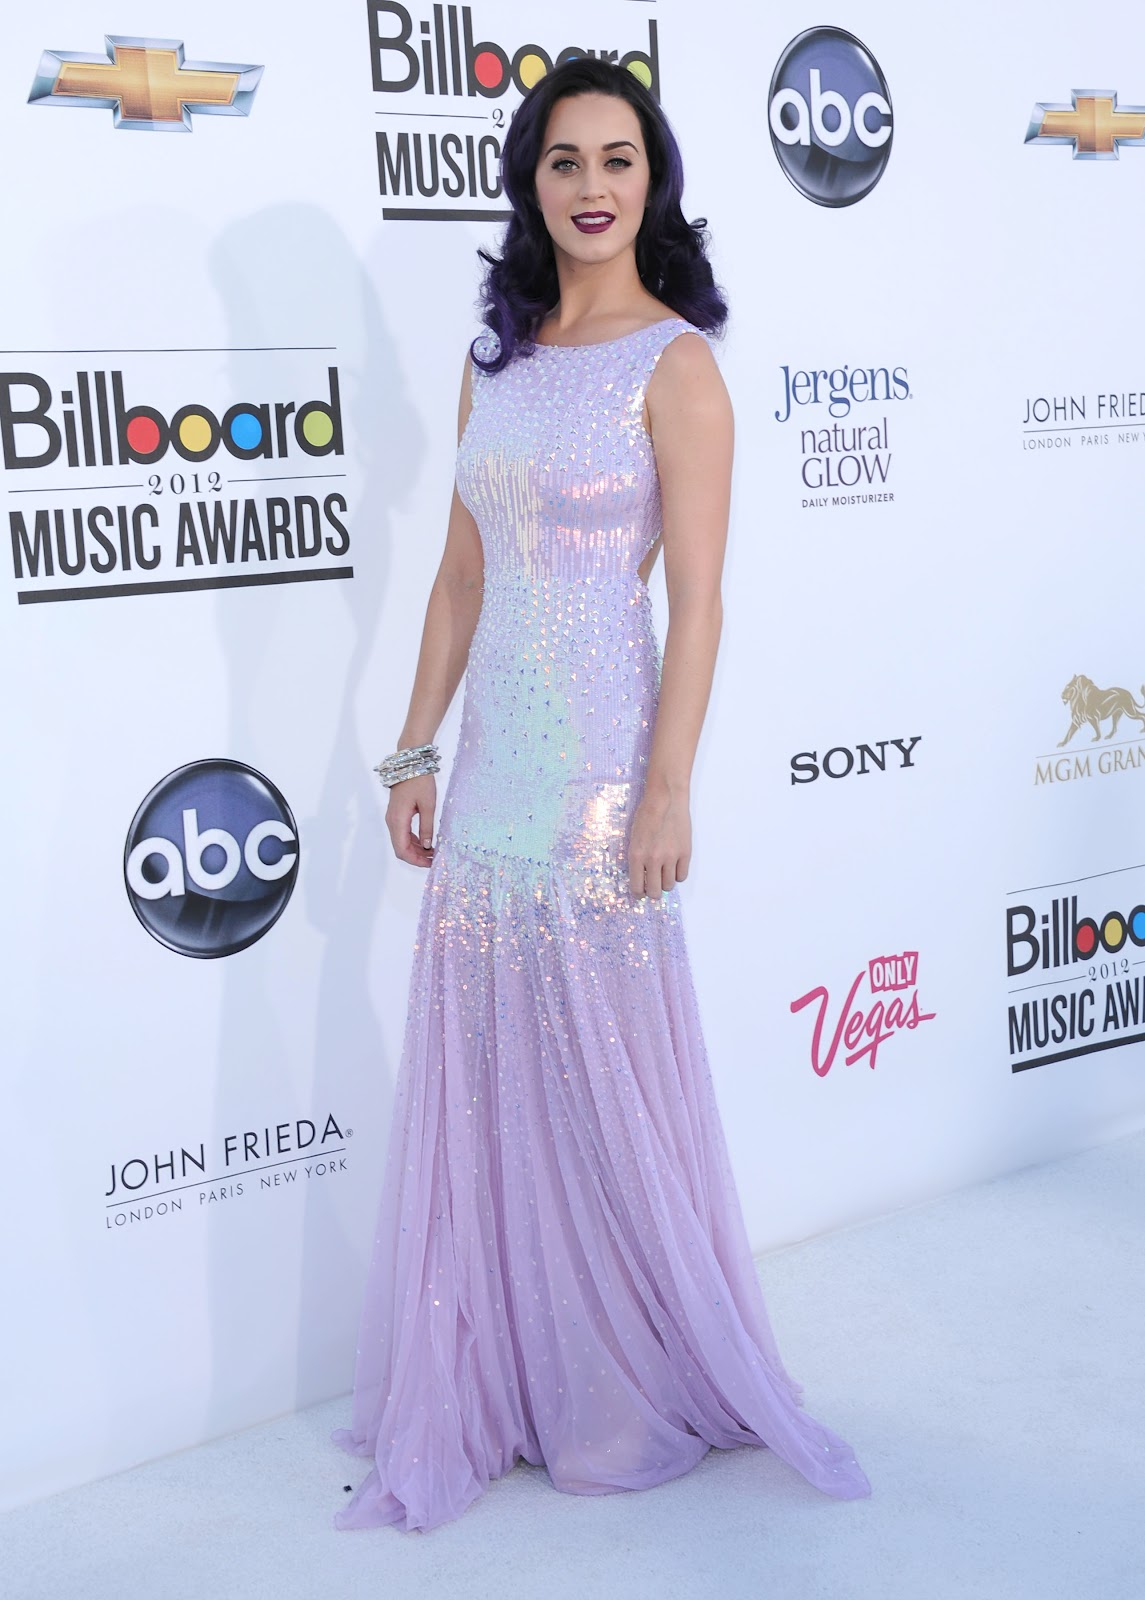 http://1.bp.blogspot.com/-G_NKlc5C3IQ/T7qhqr28q1I/AAAAAAAASQg/rMSVw7BoUTc/s1600/Katy+Perry+Billboard+Awards+2012+red+Carpet.jpg